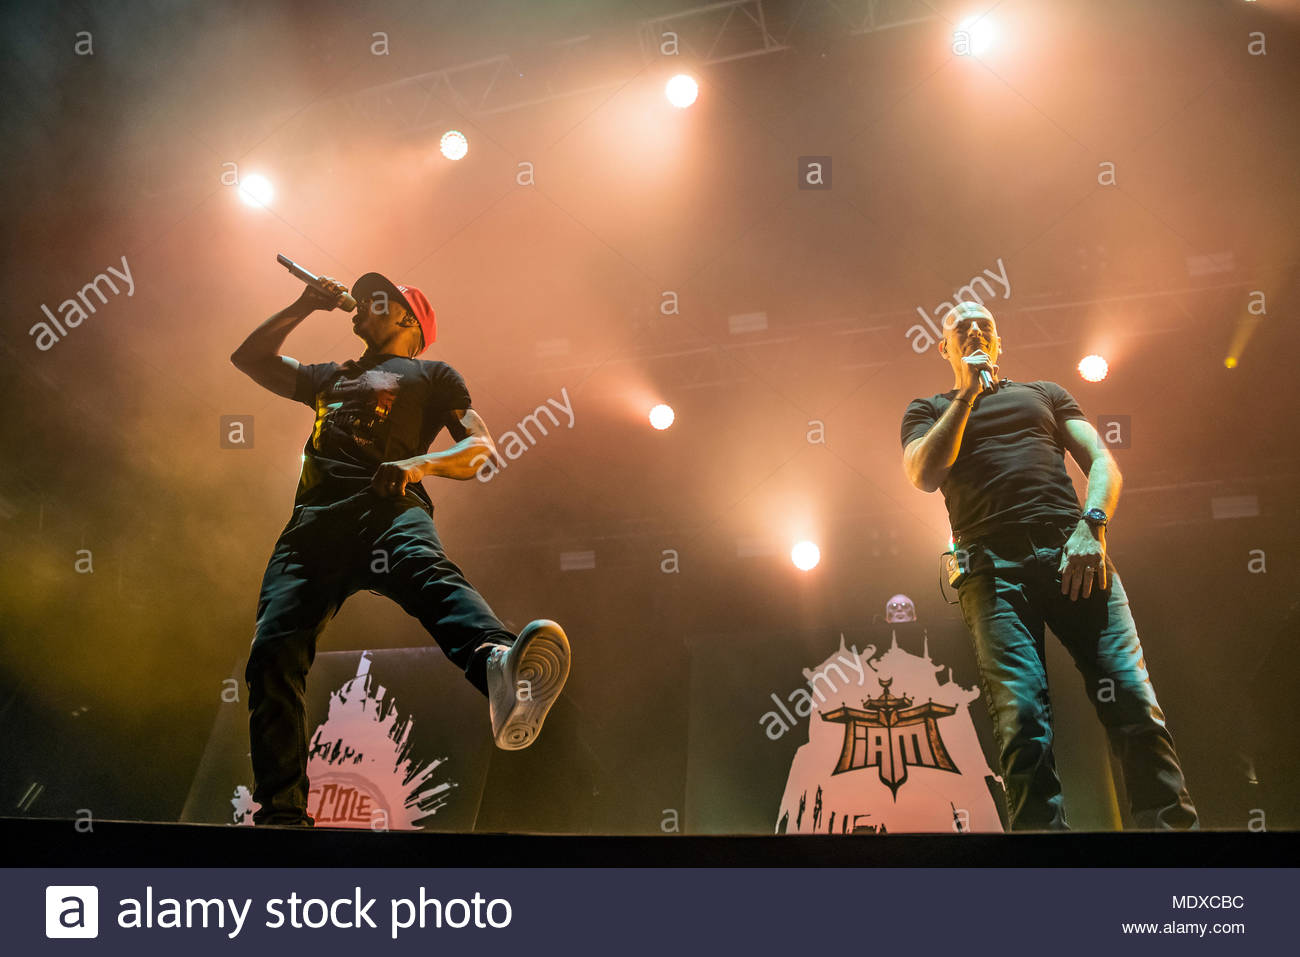 Chamonix, France. 20th April 2018. IAM performing live at the first edition of MUSILAC Mont-Blanc music festival in Chamonix (France) - 20 April 2018 Credit: Olivier Parent/Alamy Live News - Stock Image